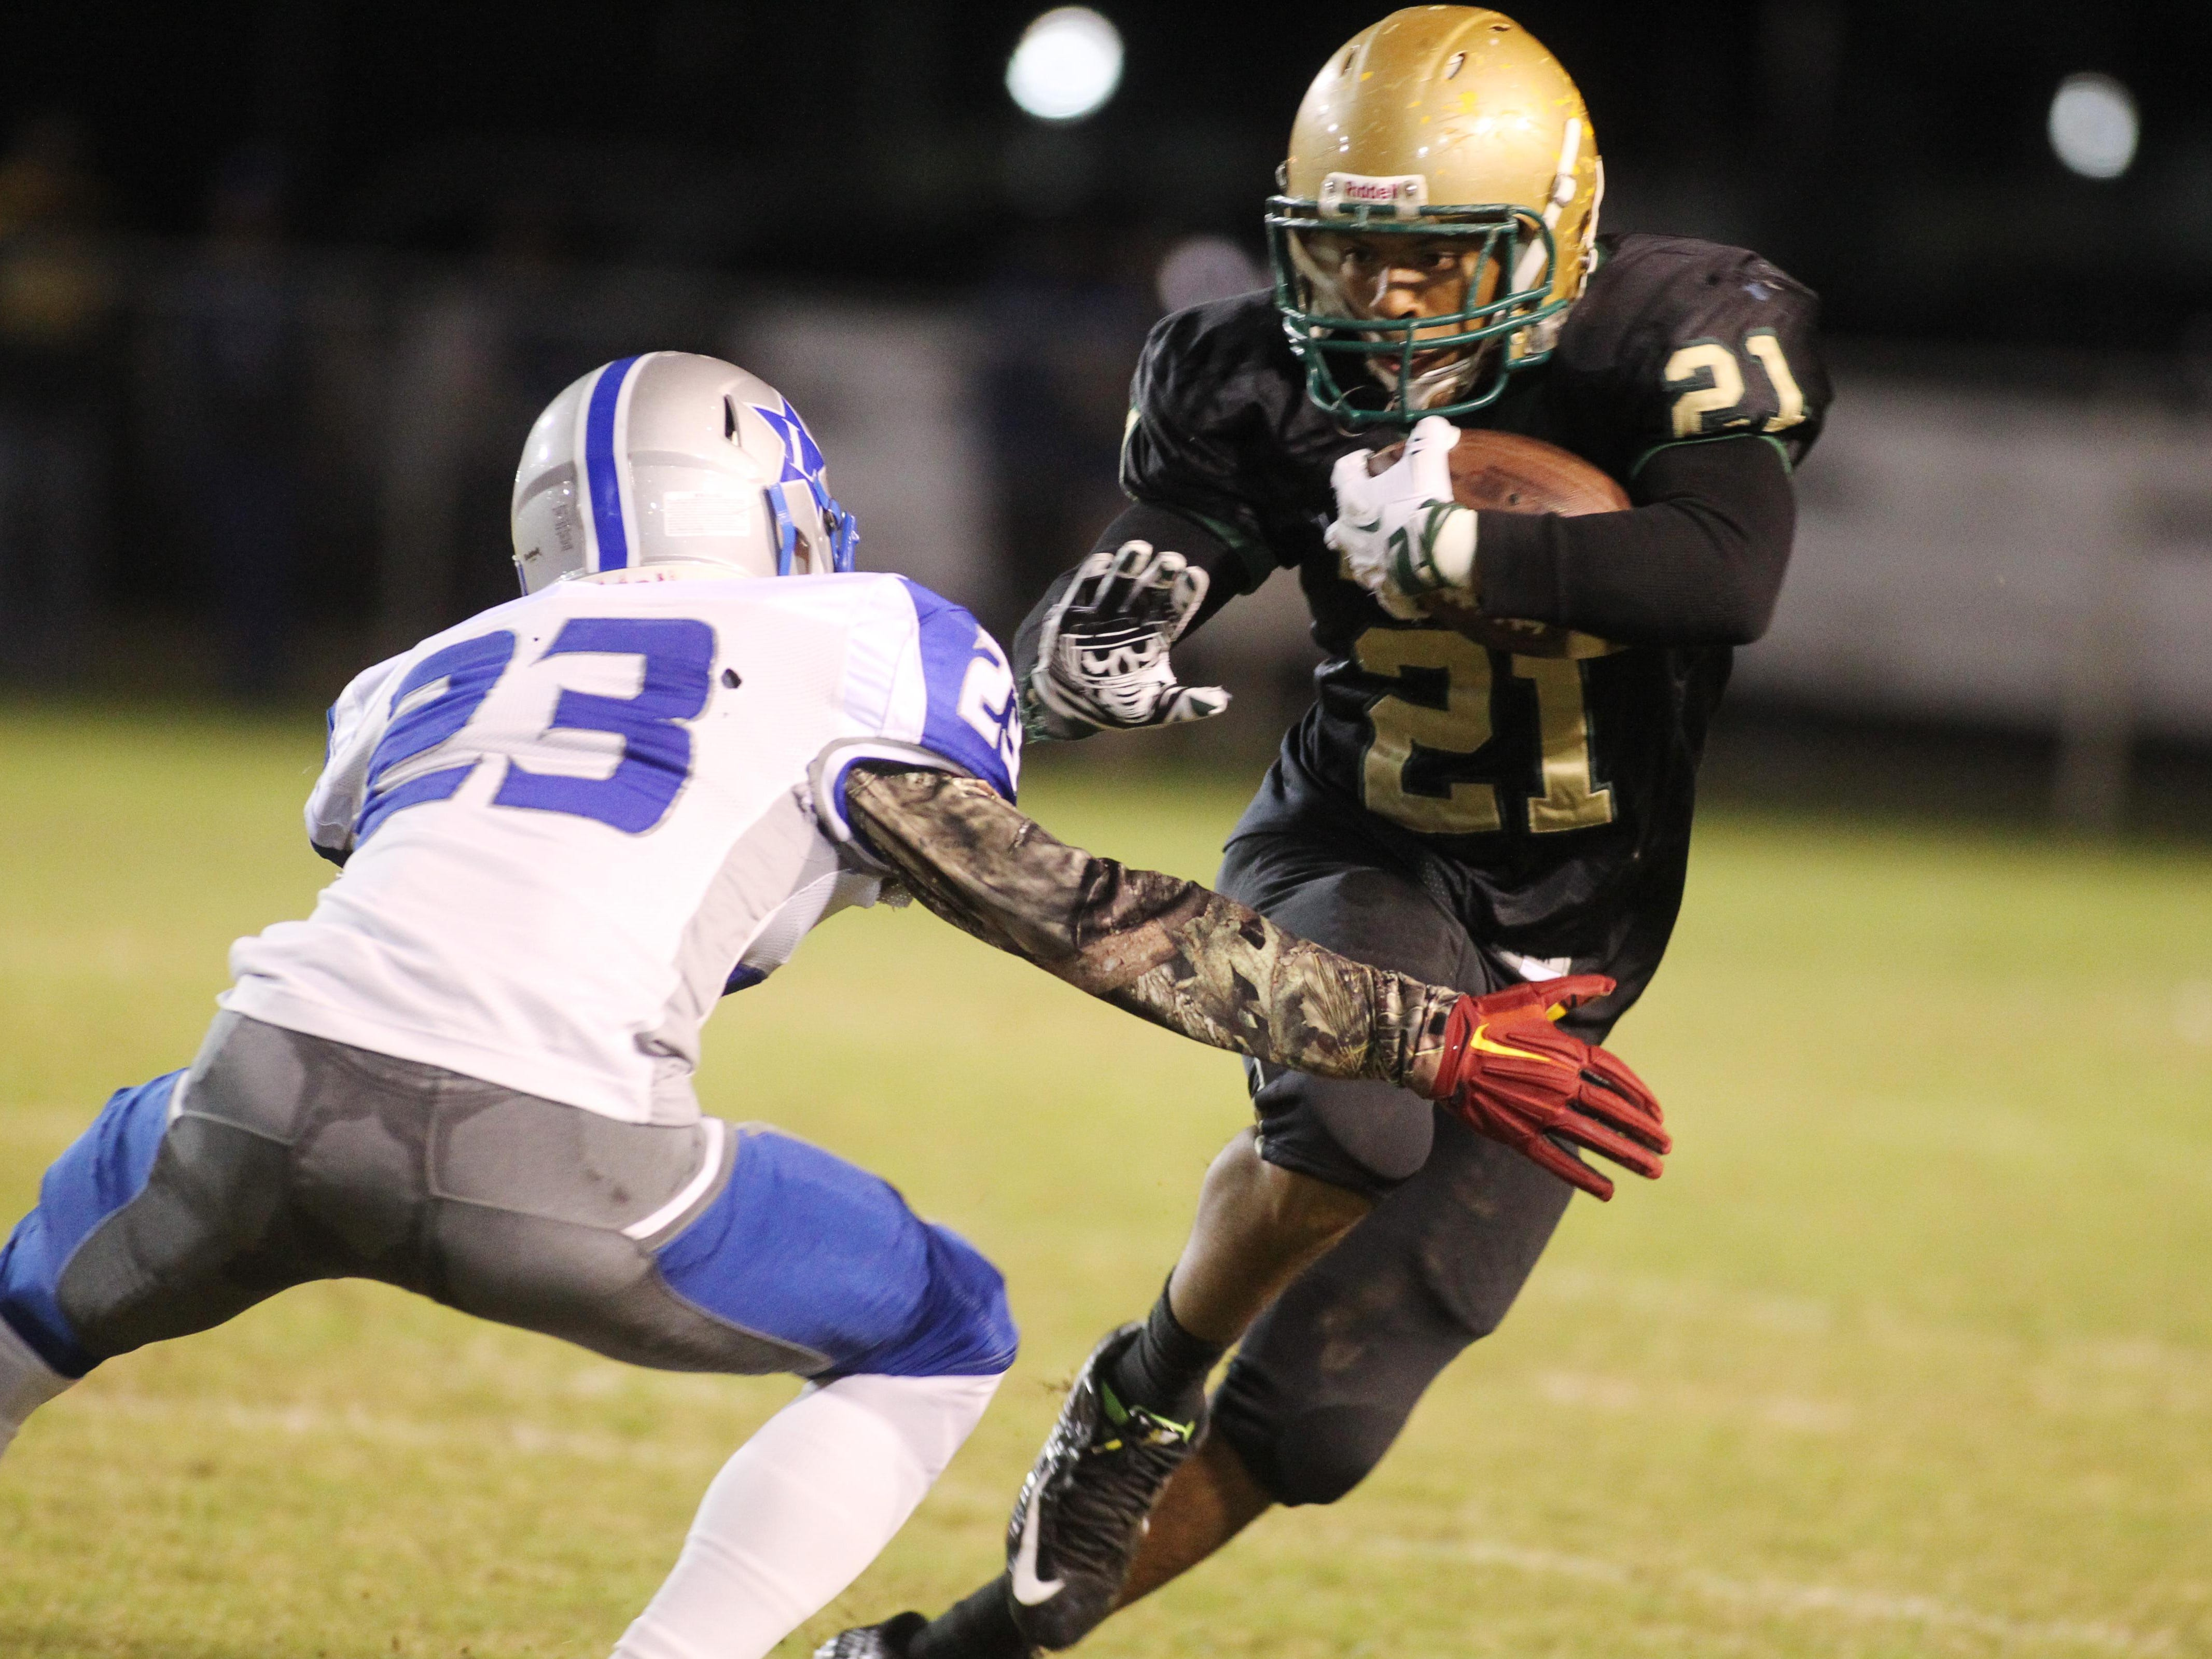 Lincoln running back Denzel Washington had a three-yard touchdown in the first half of Friday night's 44-41 overtime victory over Lee in the first round of the Class 7A playoffs.